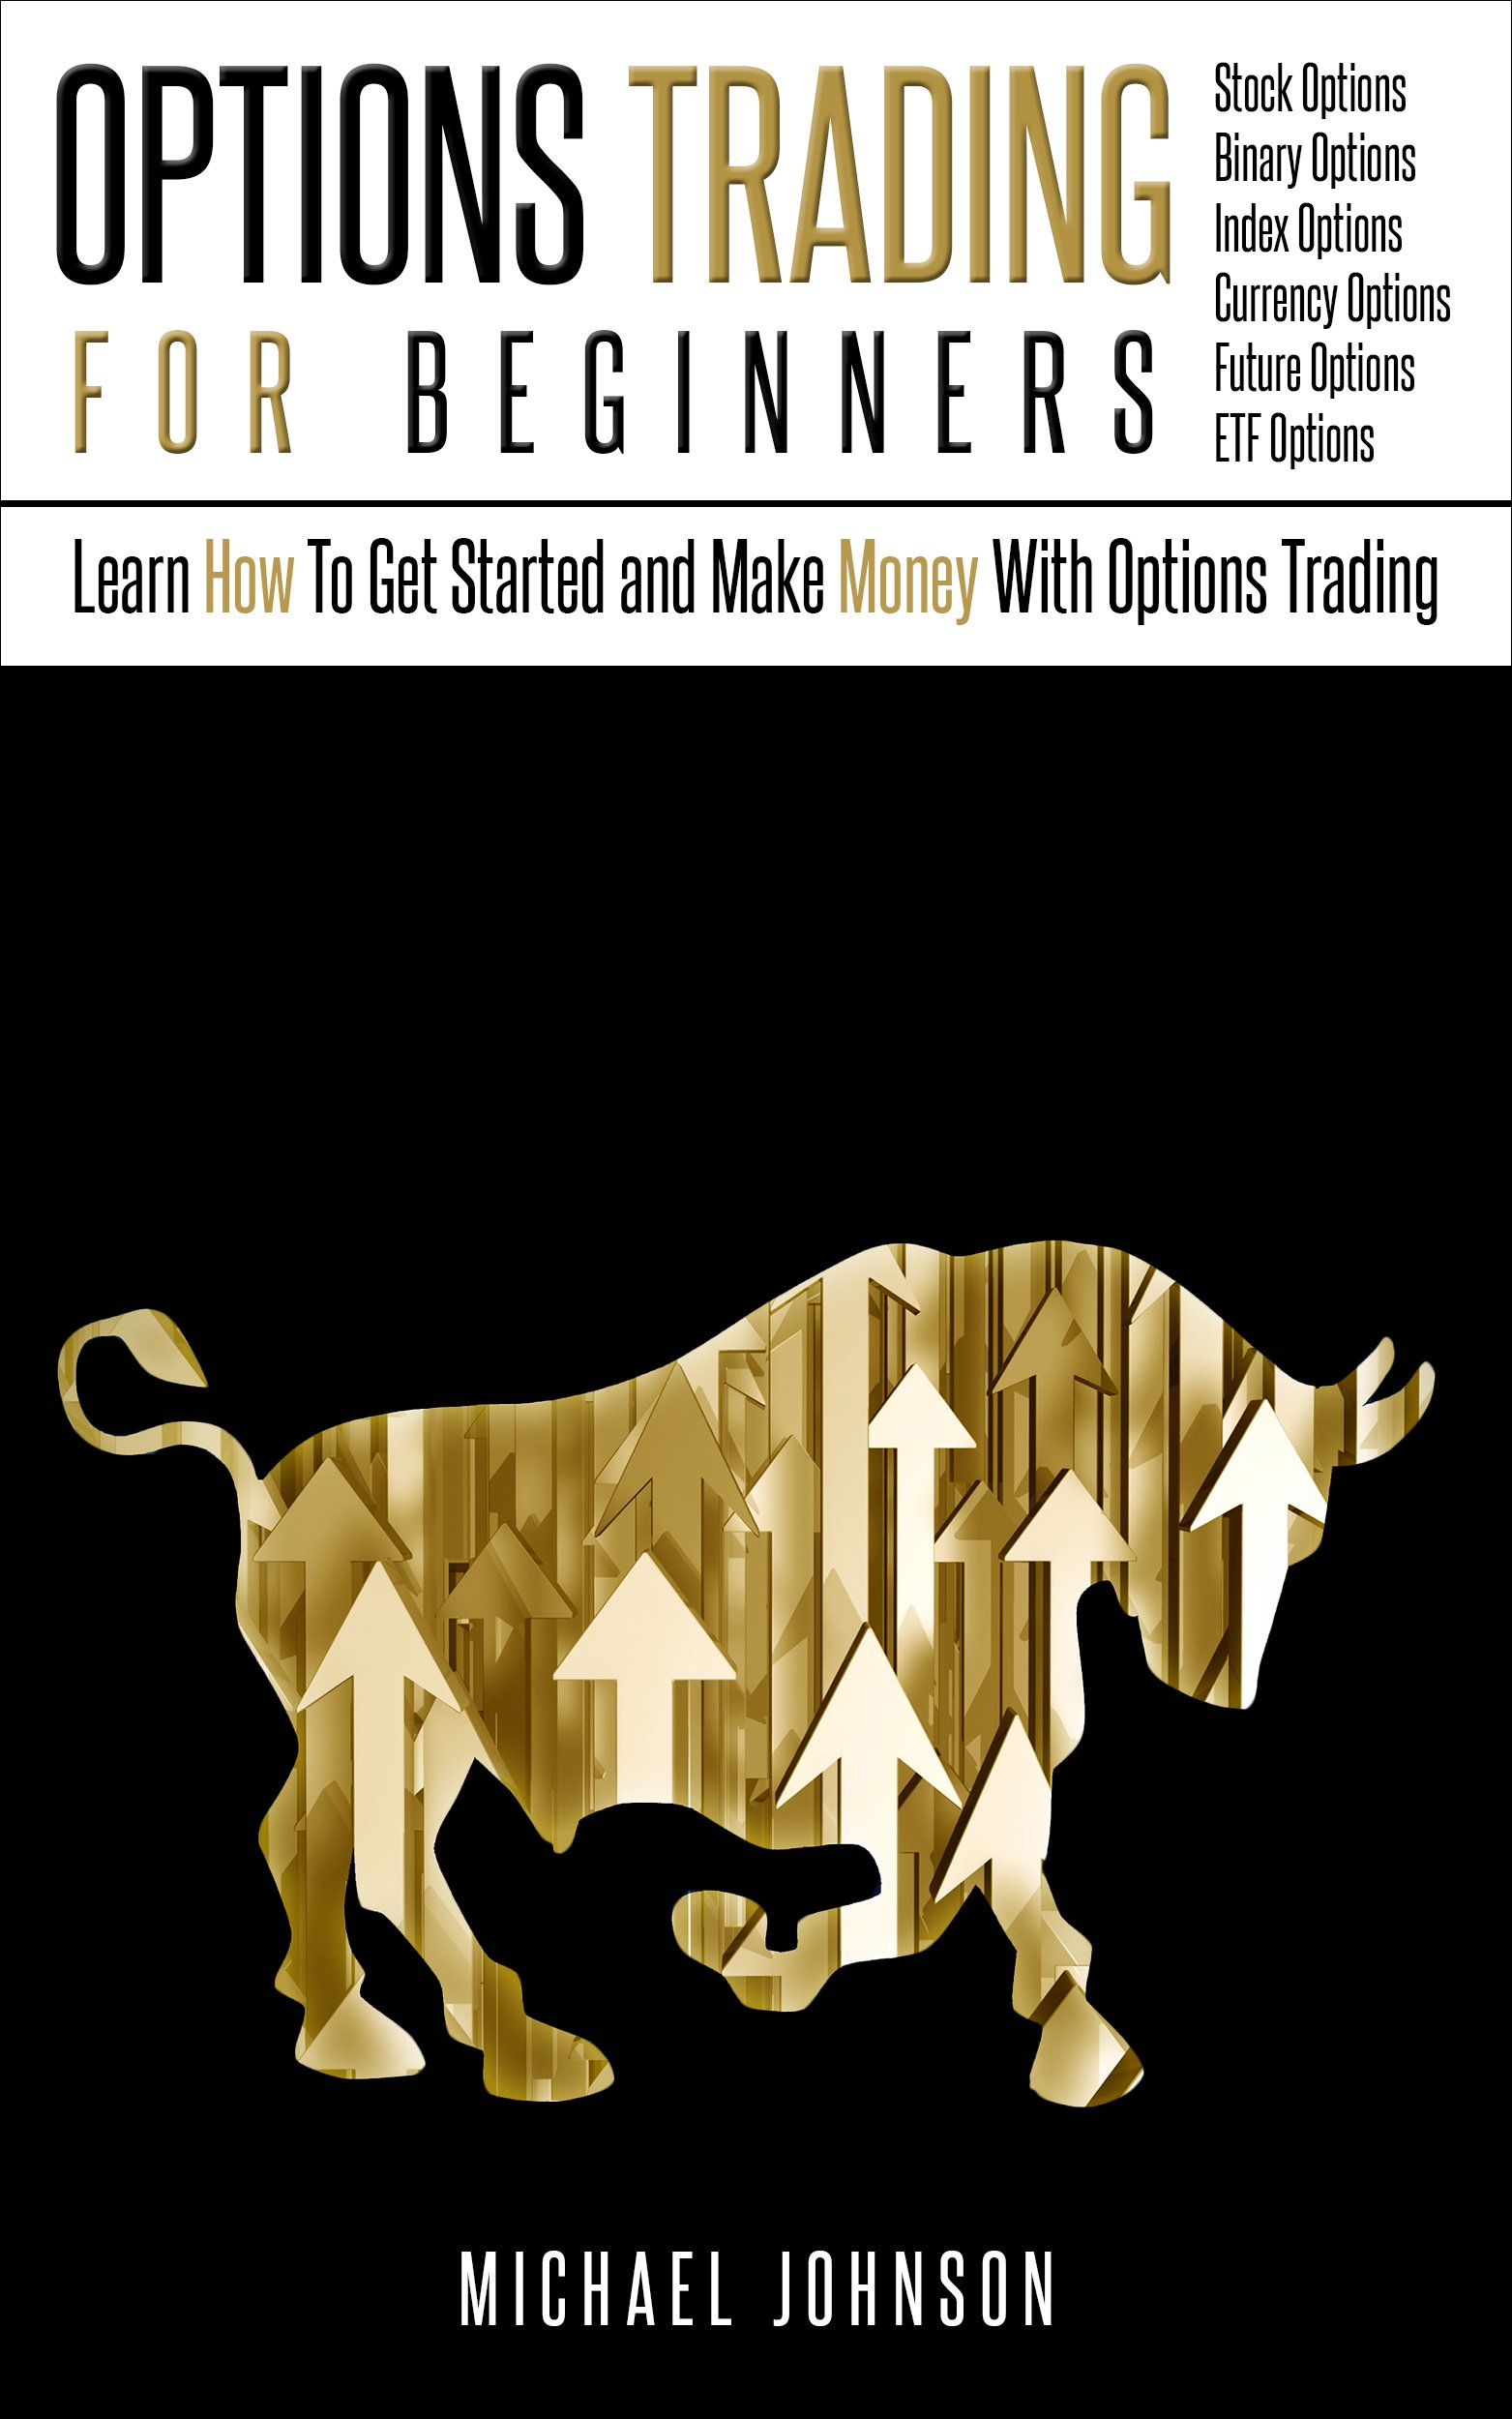 Options Trading For Beginners  Learn How To Get Started And Make Money With Options Trading – Stock Options   Binary Options – Index Options – Currency ... Trading   Finance   Money   English Edition